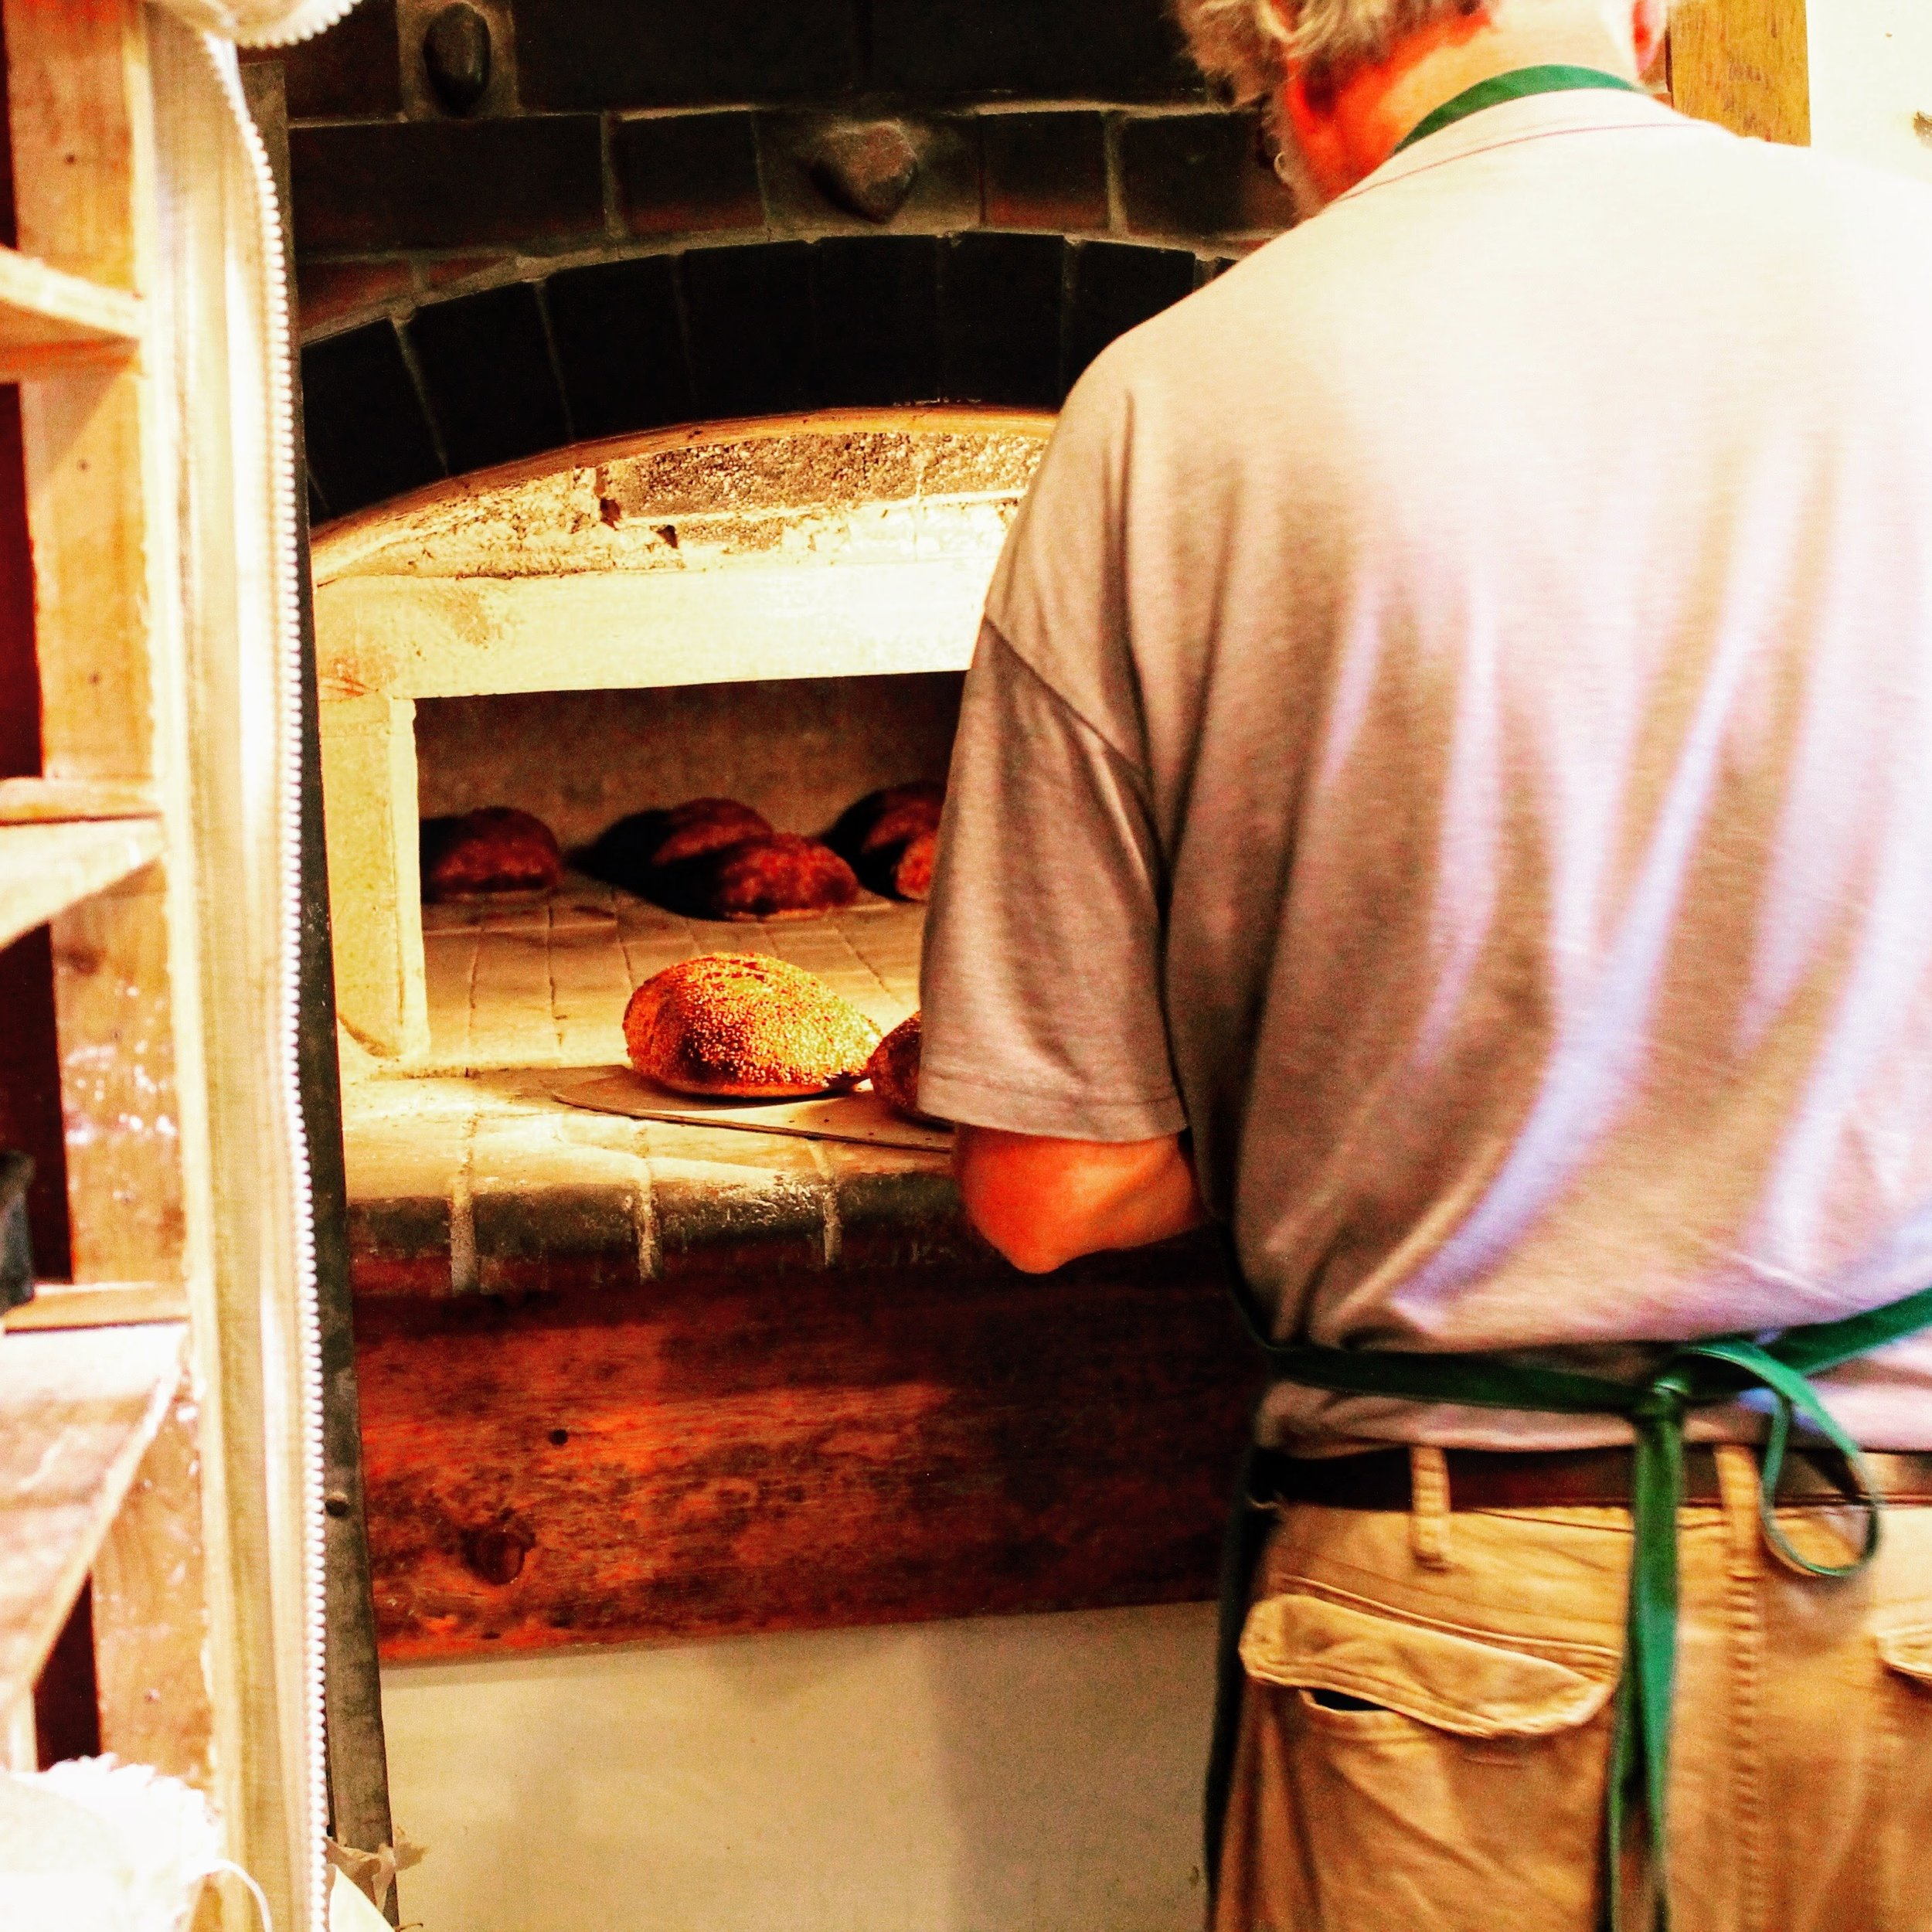 Hearth and Stone Bakery in Cohasset, CA